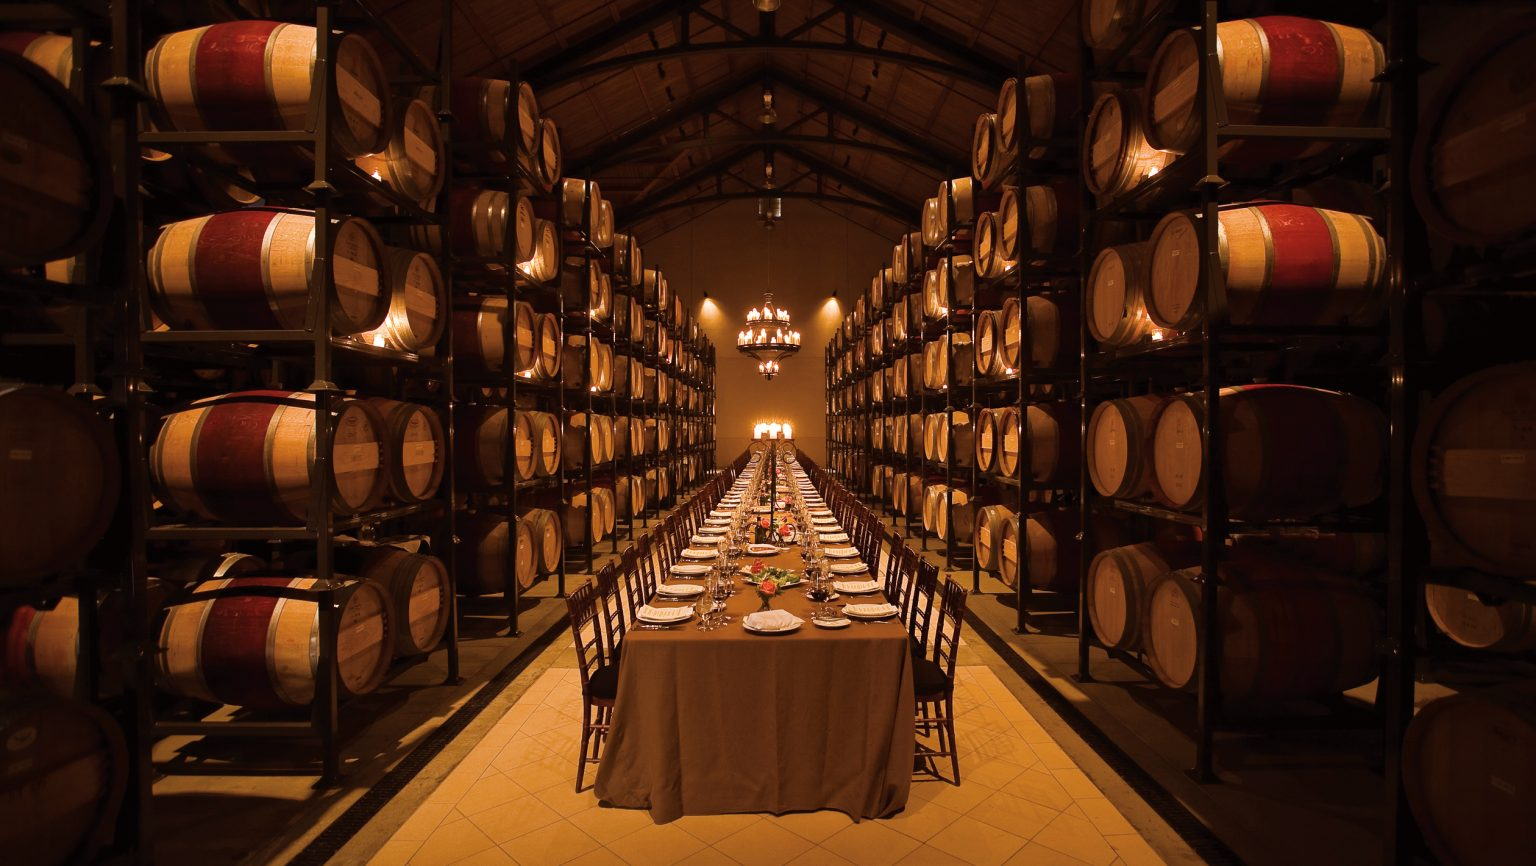 Barrel Room at Trinchero